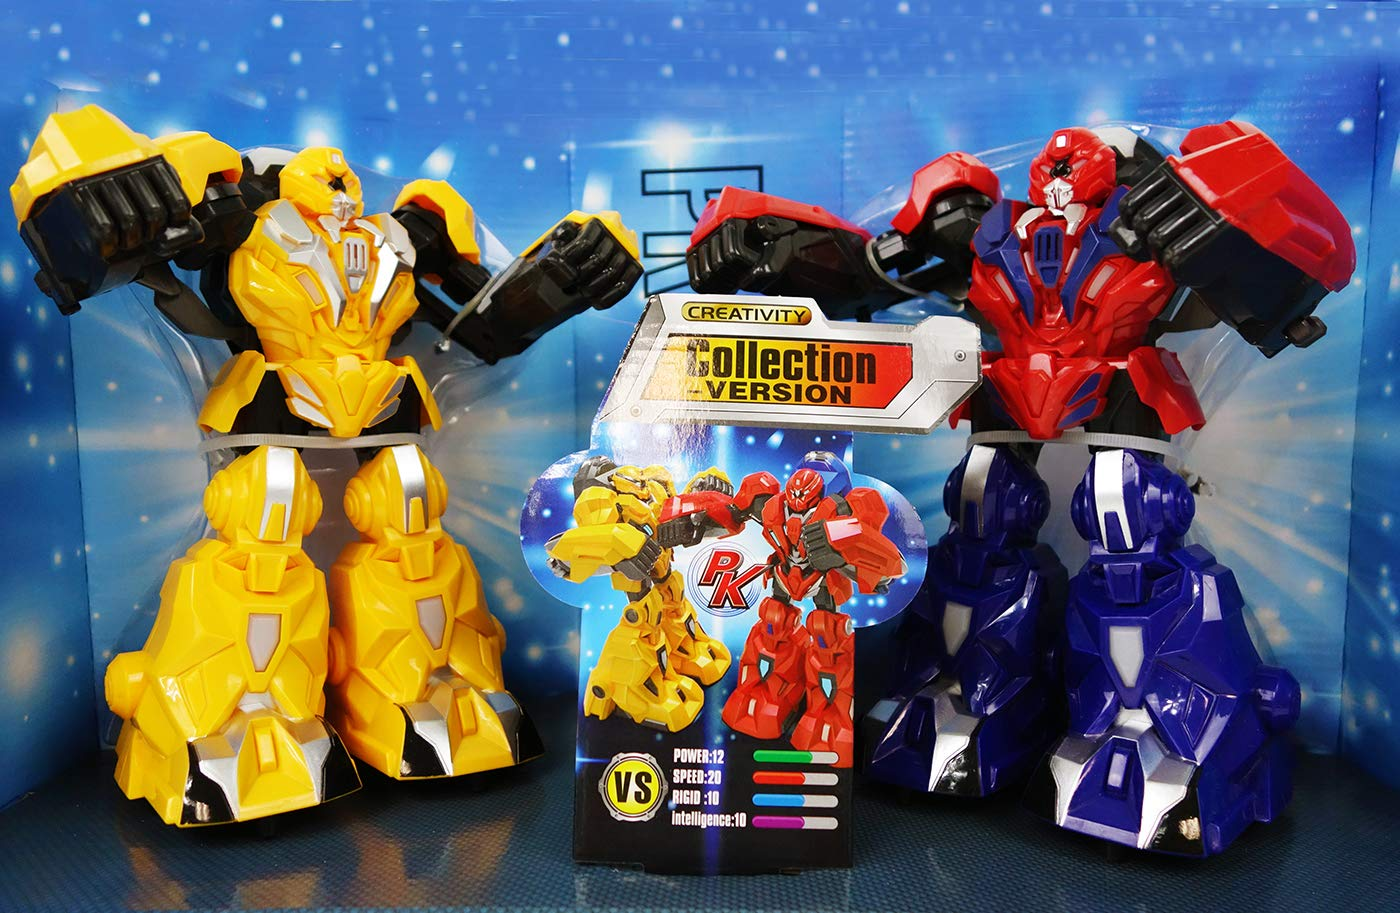 NBD Corp Real Hero- Infrared Fighting Robots A Fun Toy For Boys And Girls This Is A Very Exciting Toy For Kids This Really Rad Robot Is A Super Fun Boxing Robot And The Hero You've Been Looking For by NBD Corp (Image #3)